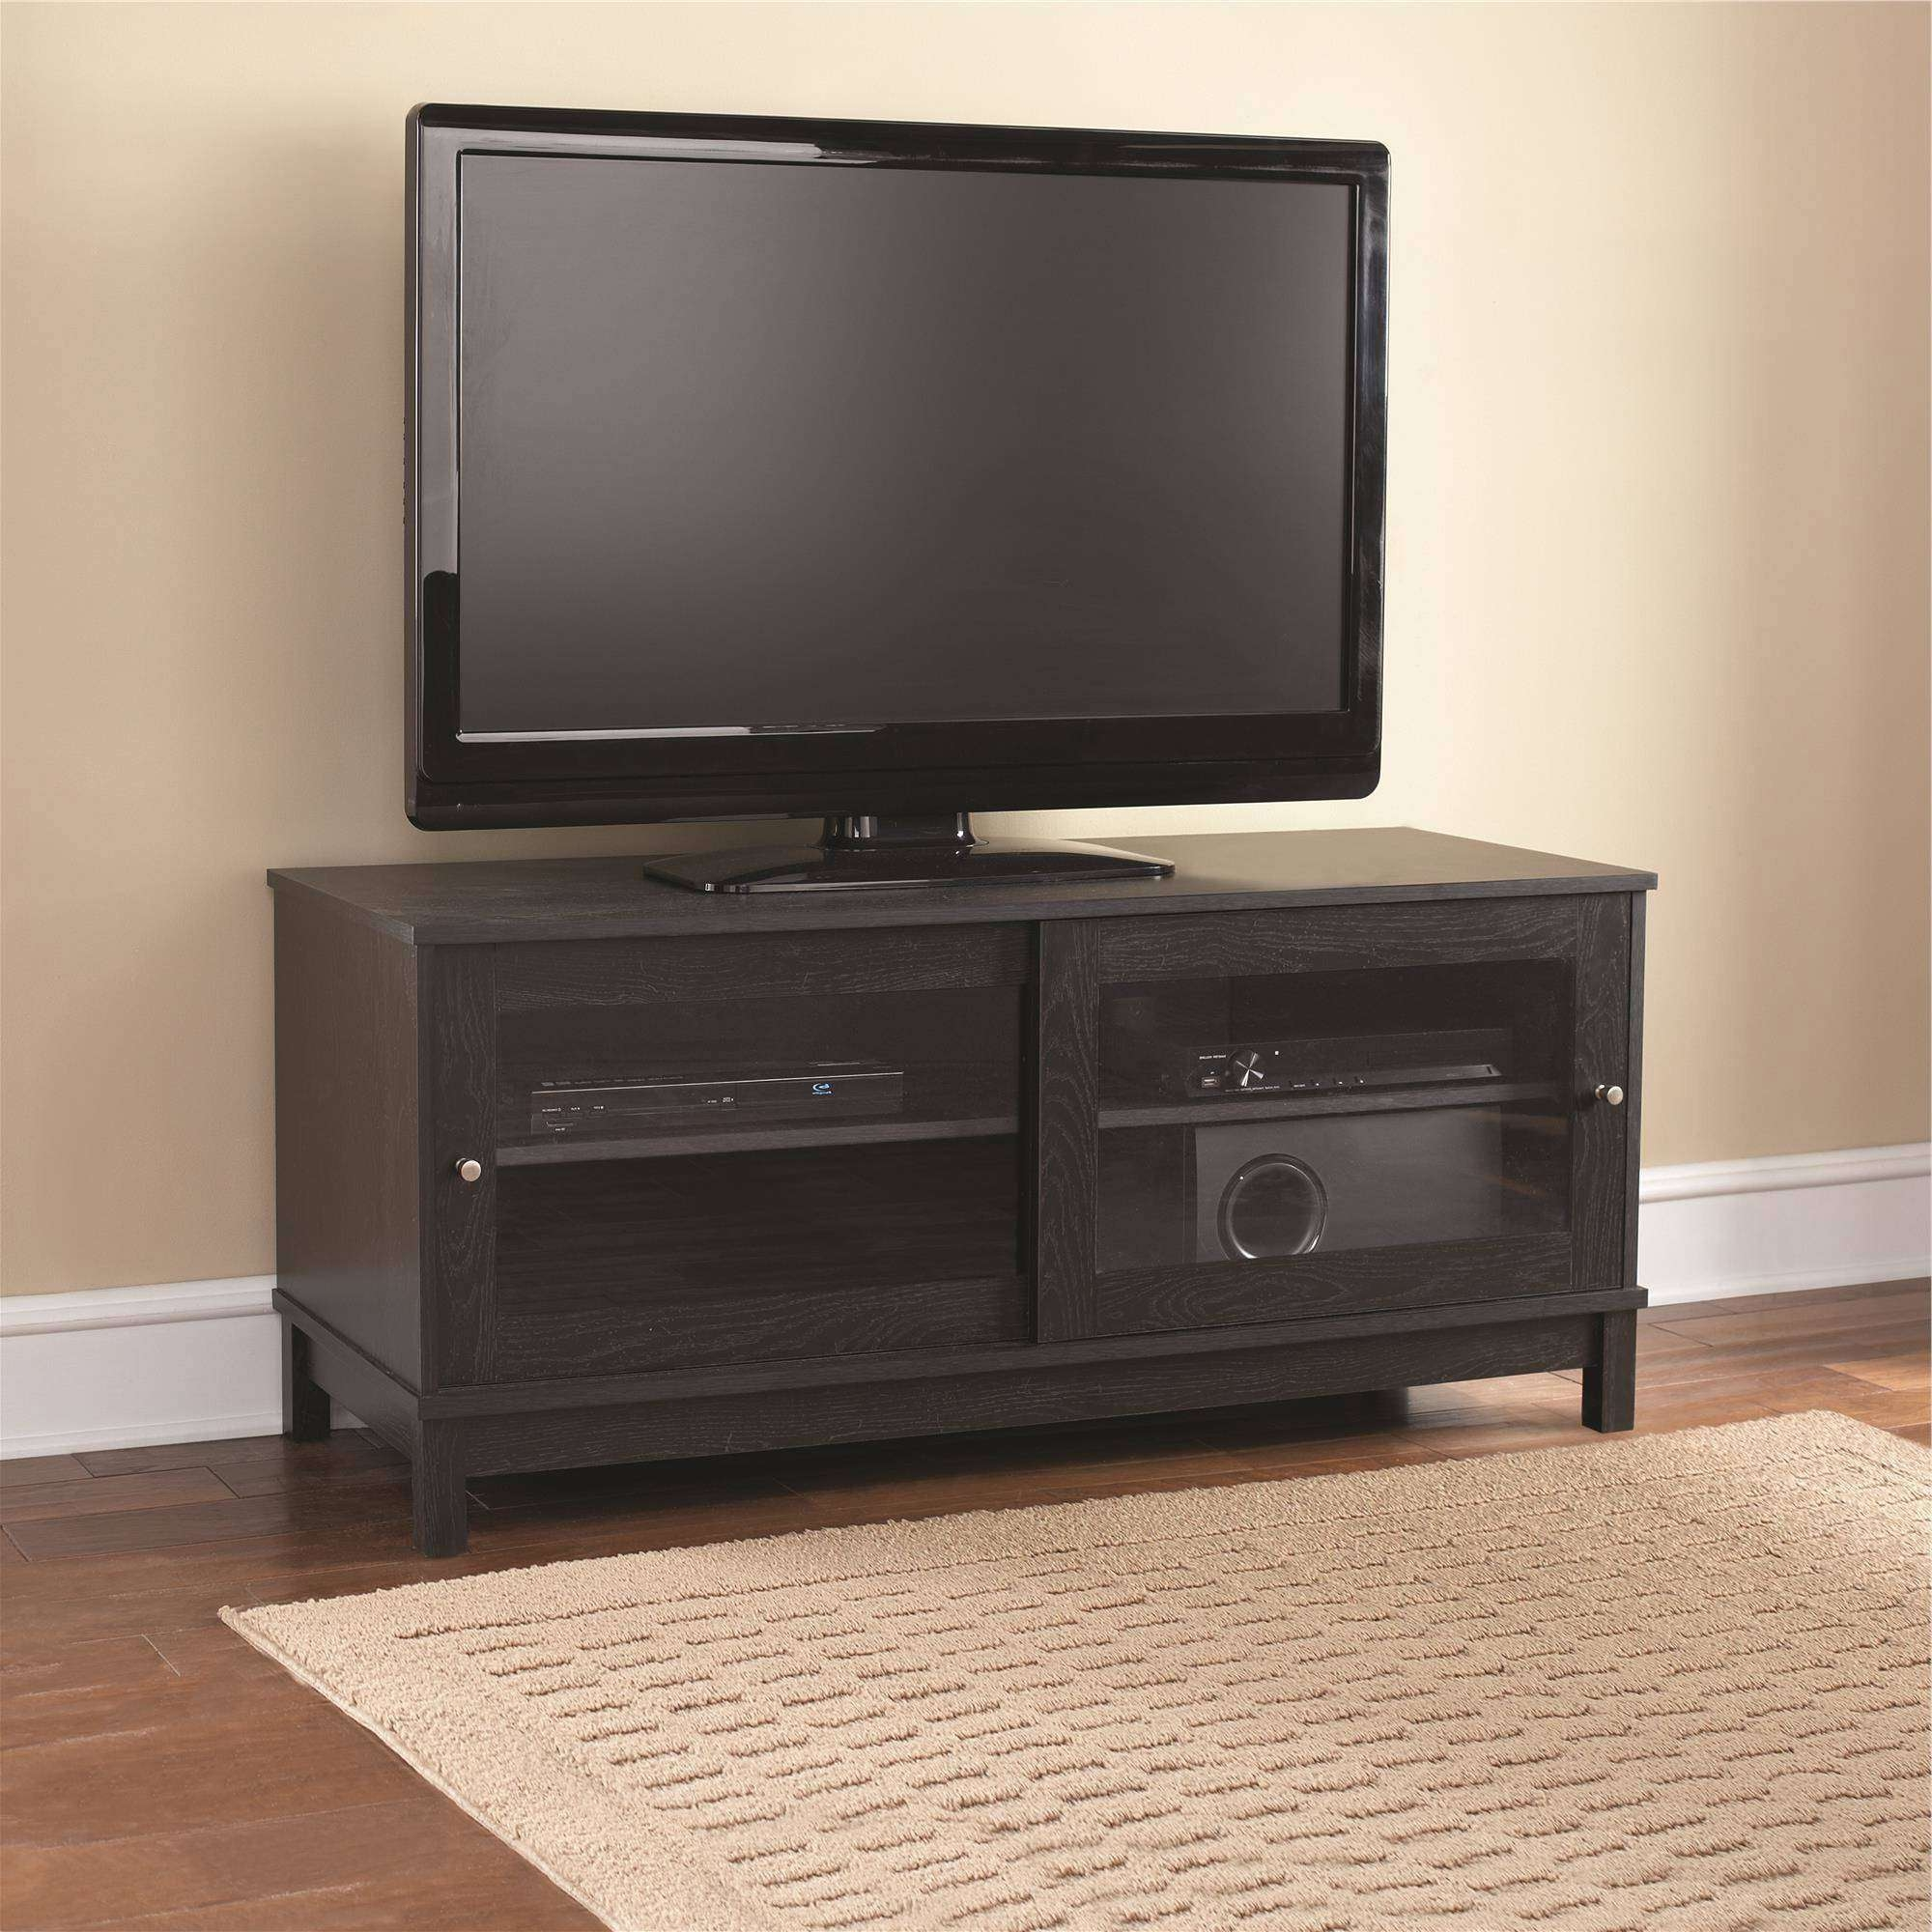 Black Tv Stand With Glass Doors Choice Image – Doors Design Ideas Inside Tv Cabinets With Glass Doors (View 3 of 20)